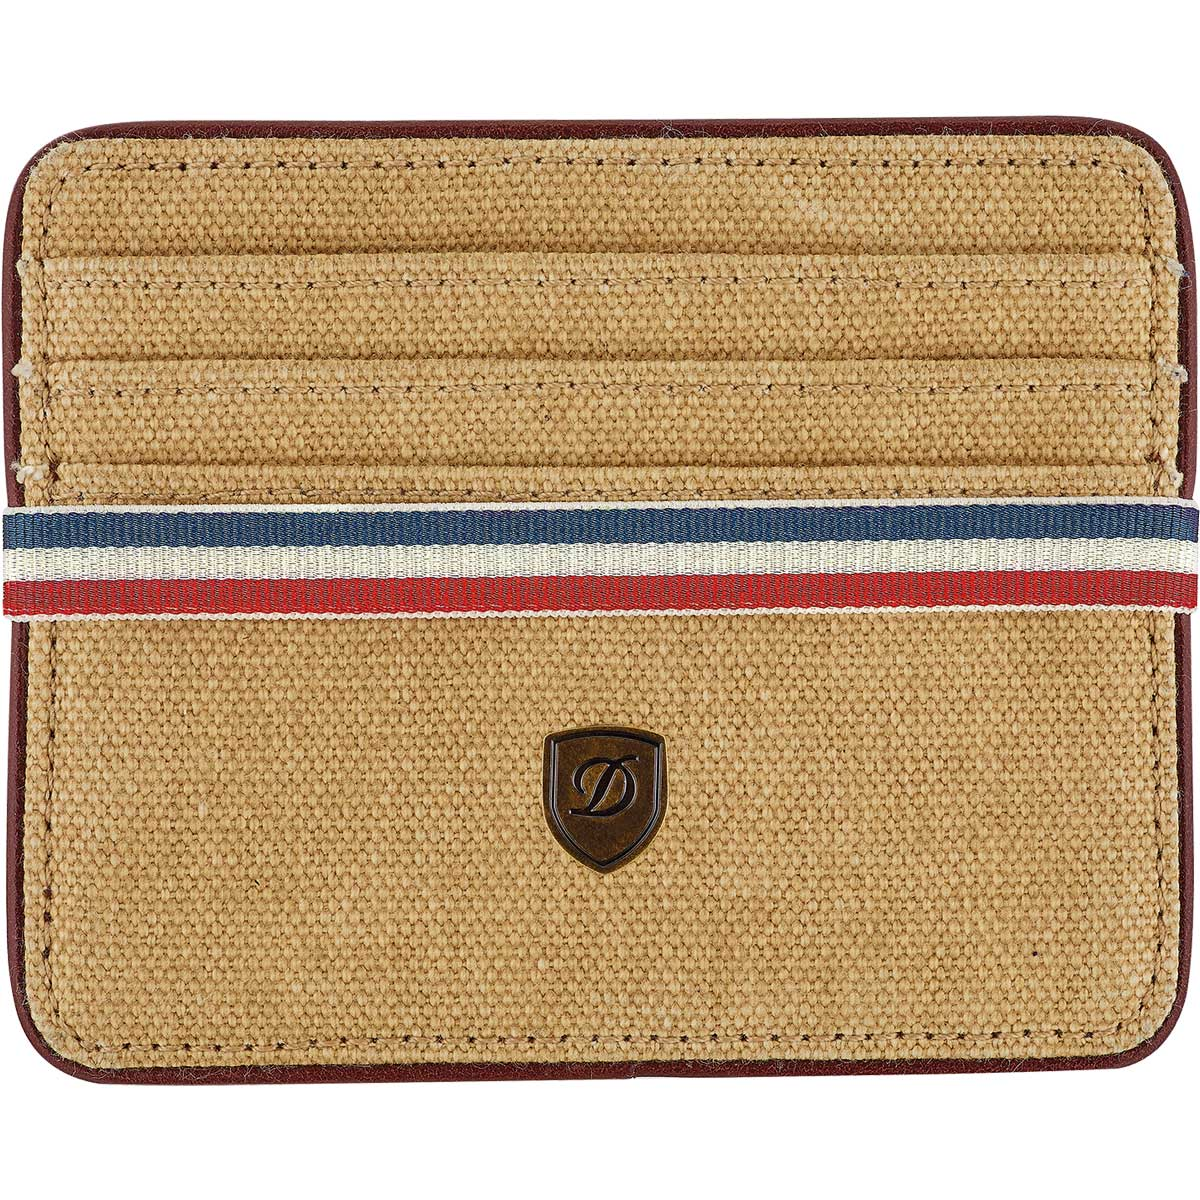 ST Dupont Iconic Multi Credit Card Wallet - Beige Canvas / Cognac Leather